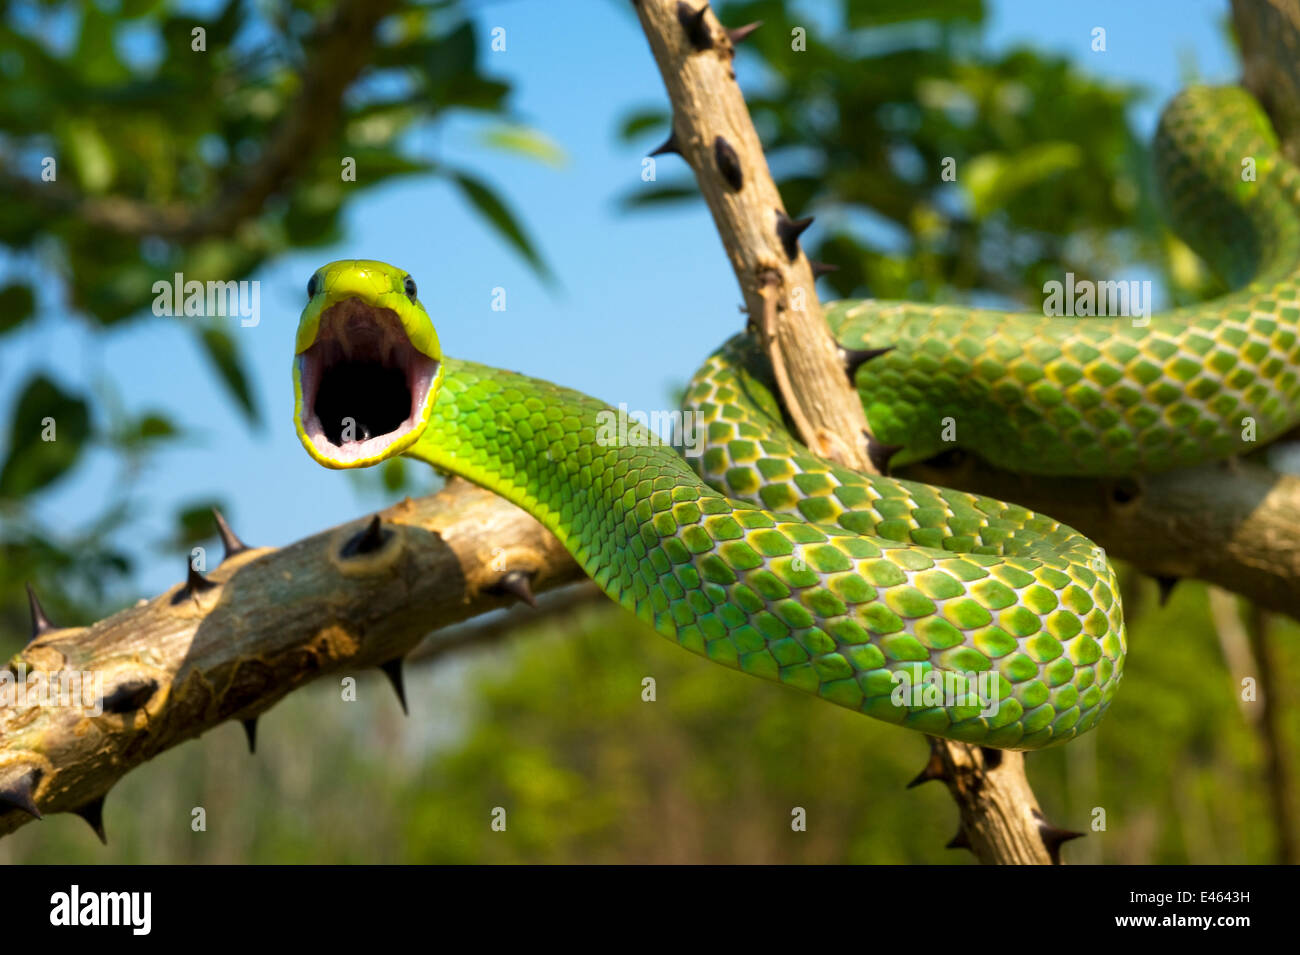 Green tree snake (Phyllodryas viridissima) on a branch about to stike, Bolivian Amazonia, controlled conditions Stock Photo